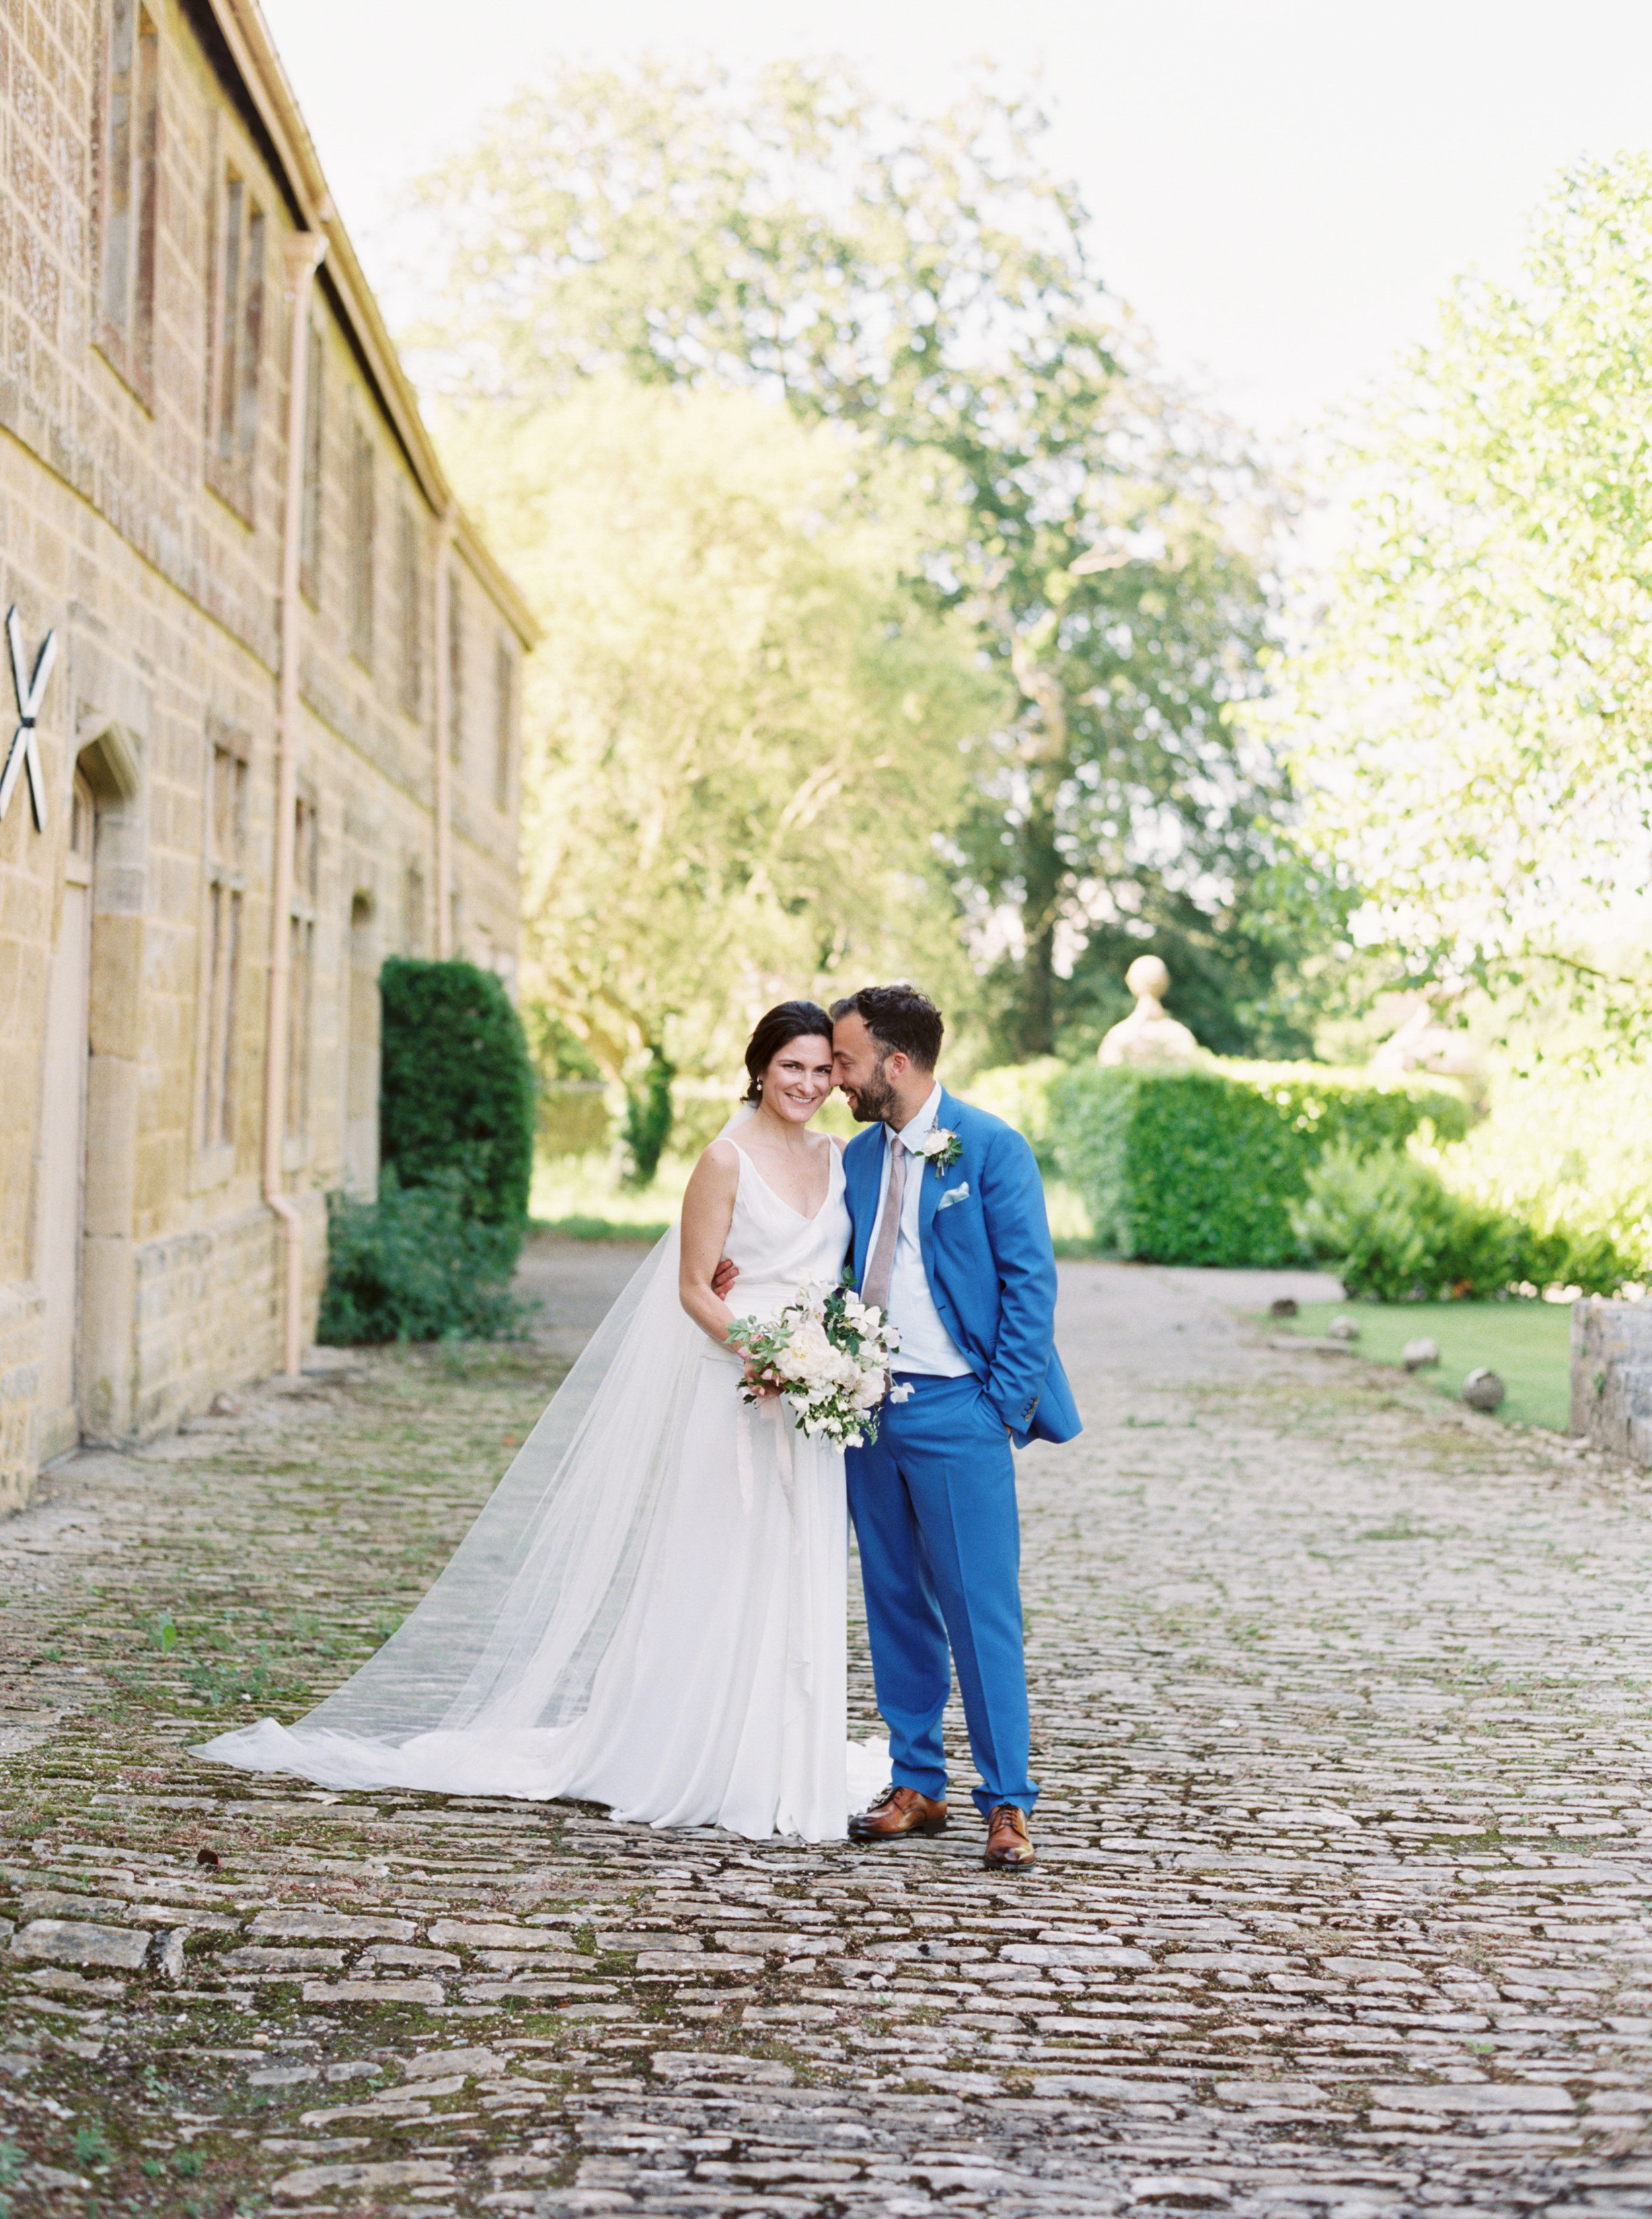 Lily & Sage | English Country Manor Wedding Soft Pink Pale Blue White and Silver Toned Green Neutral Tones American Bride North Cadbury Court | Nicole Colwell Photography 0026.jpg